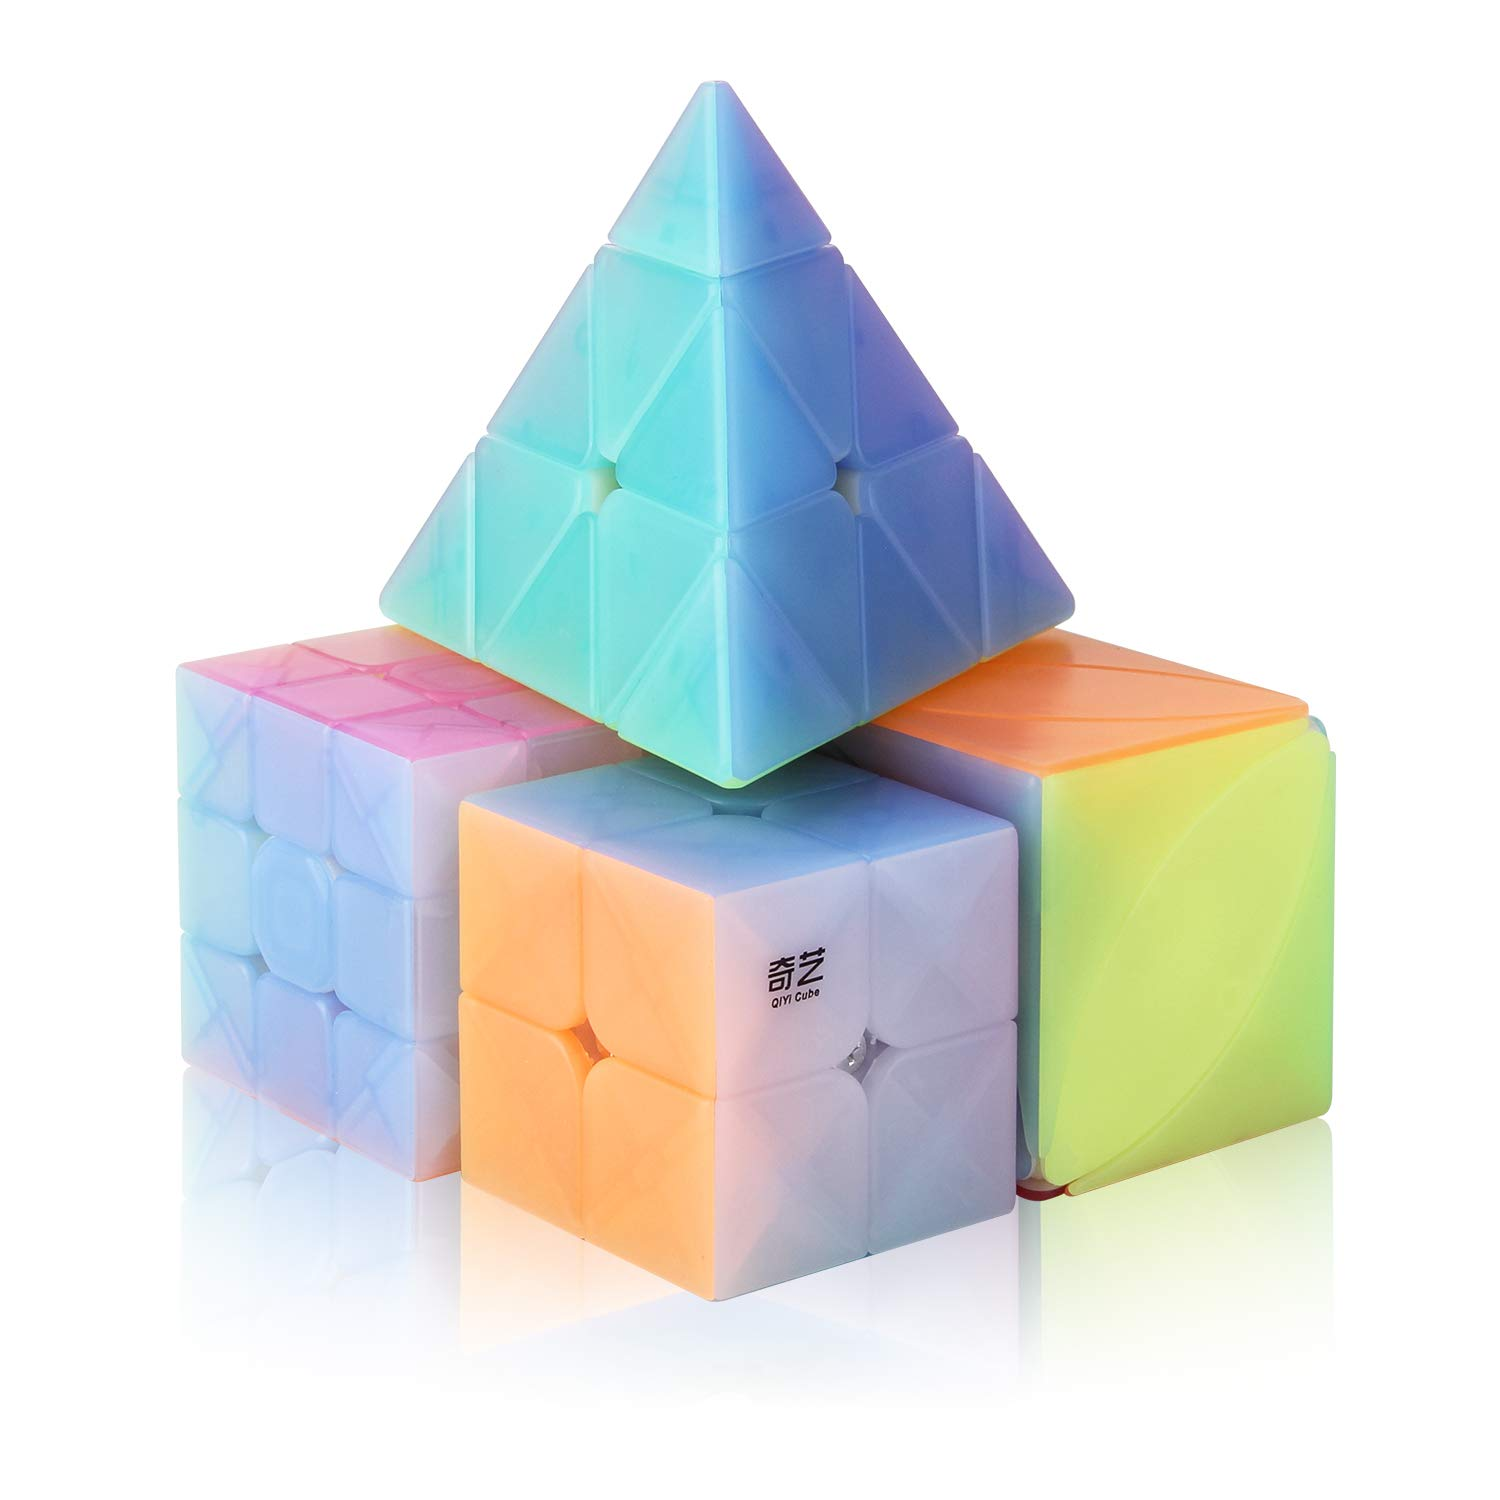 Roxenda Speed Cube Set, Jelly Speed Cube Bundle 2x2 3x3 Pyramid and Ivy Speed Cube Smooth Stickerless Cube Puzzle Toy for Kids